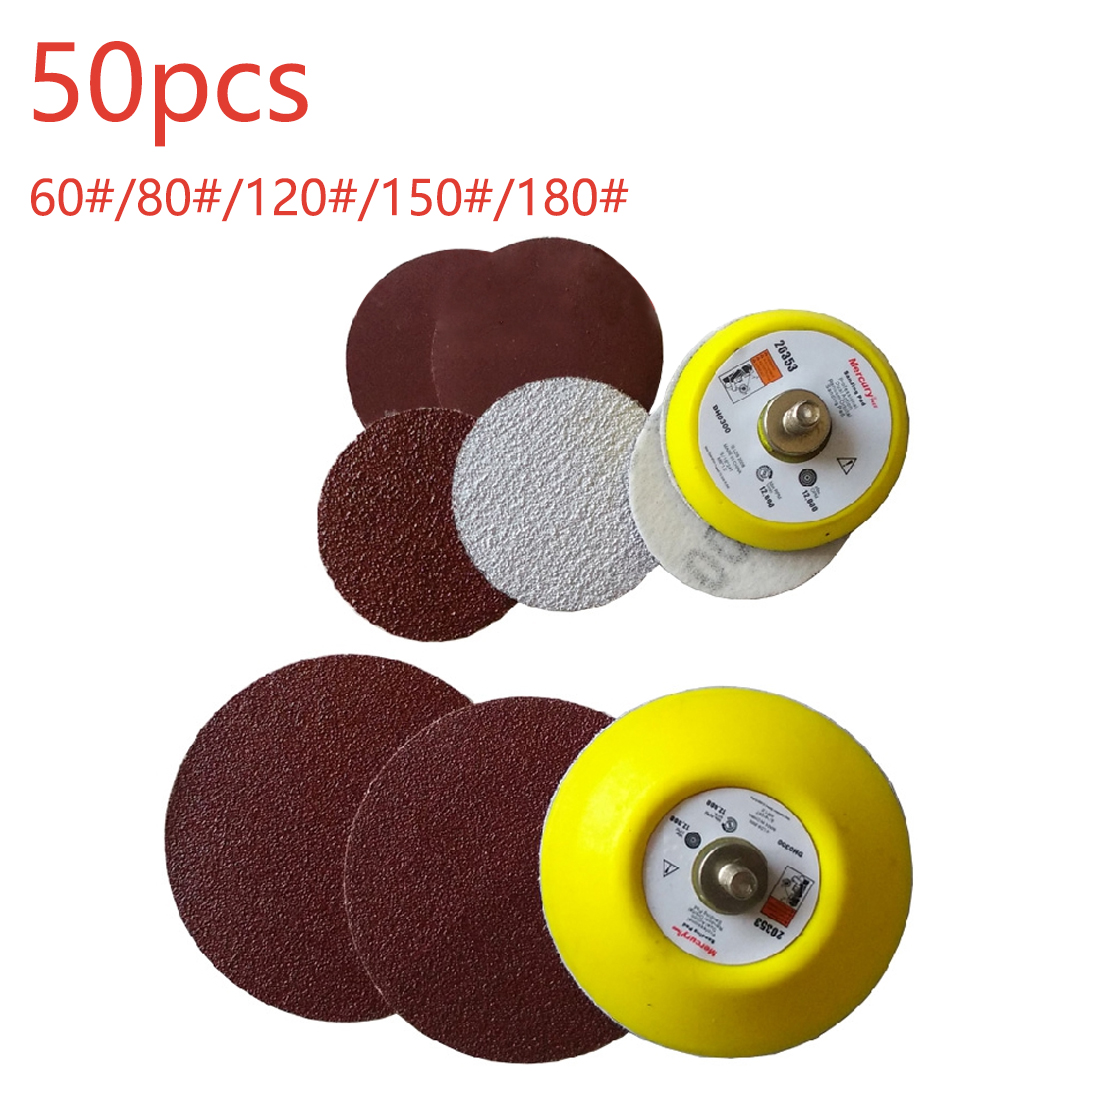 Abrasive polishing grinding nozzles 50pcs 2 inch red circular  sandpaper 60/80/120/150/180+1pc Hook Loop Plate fit Dremel-in Abrasive Tools from Tools